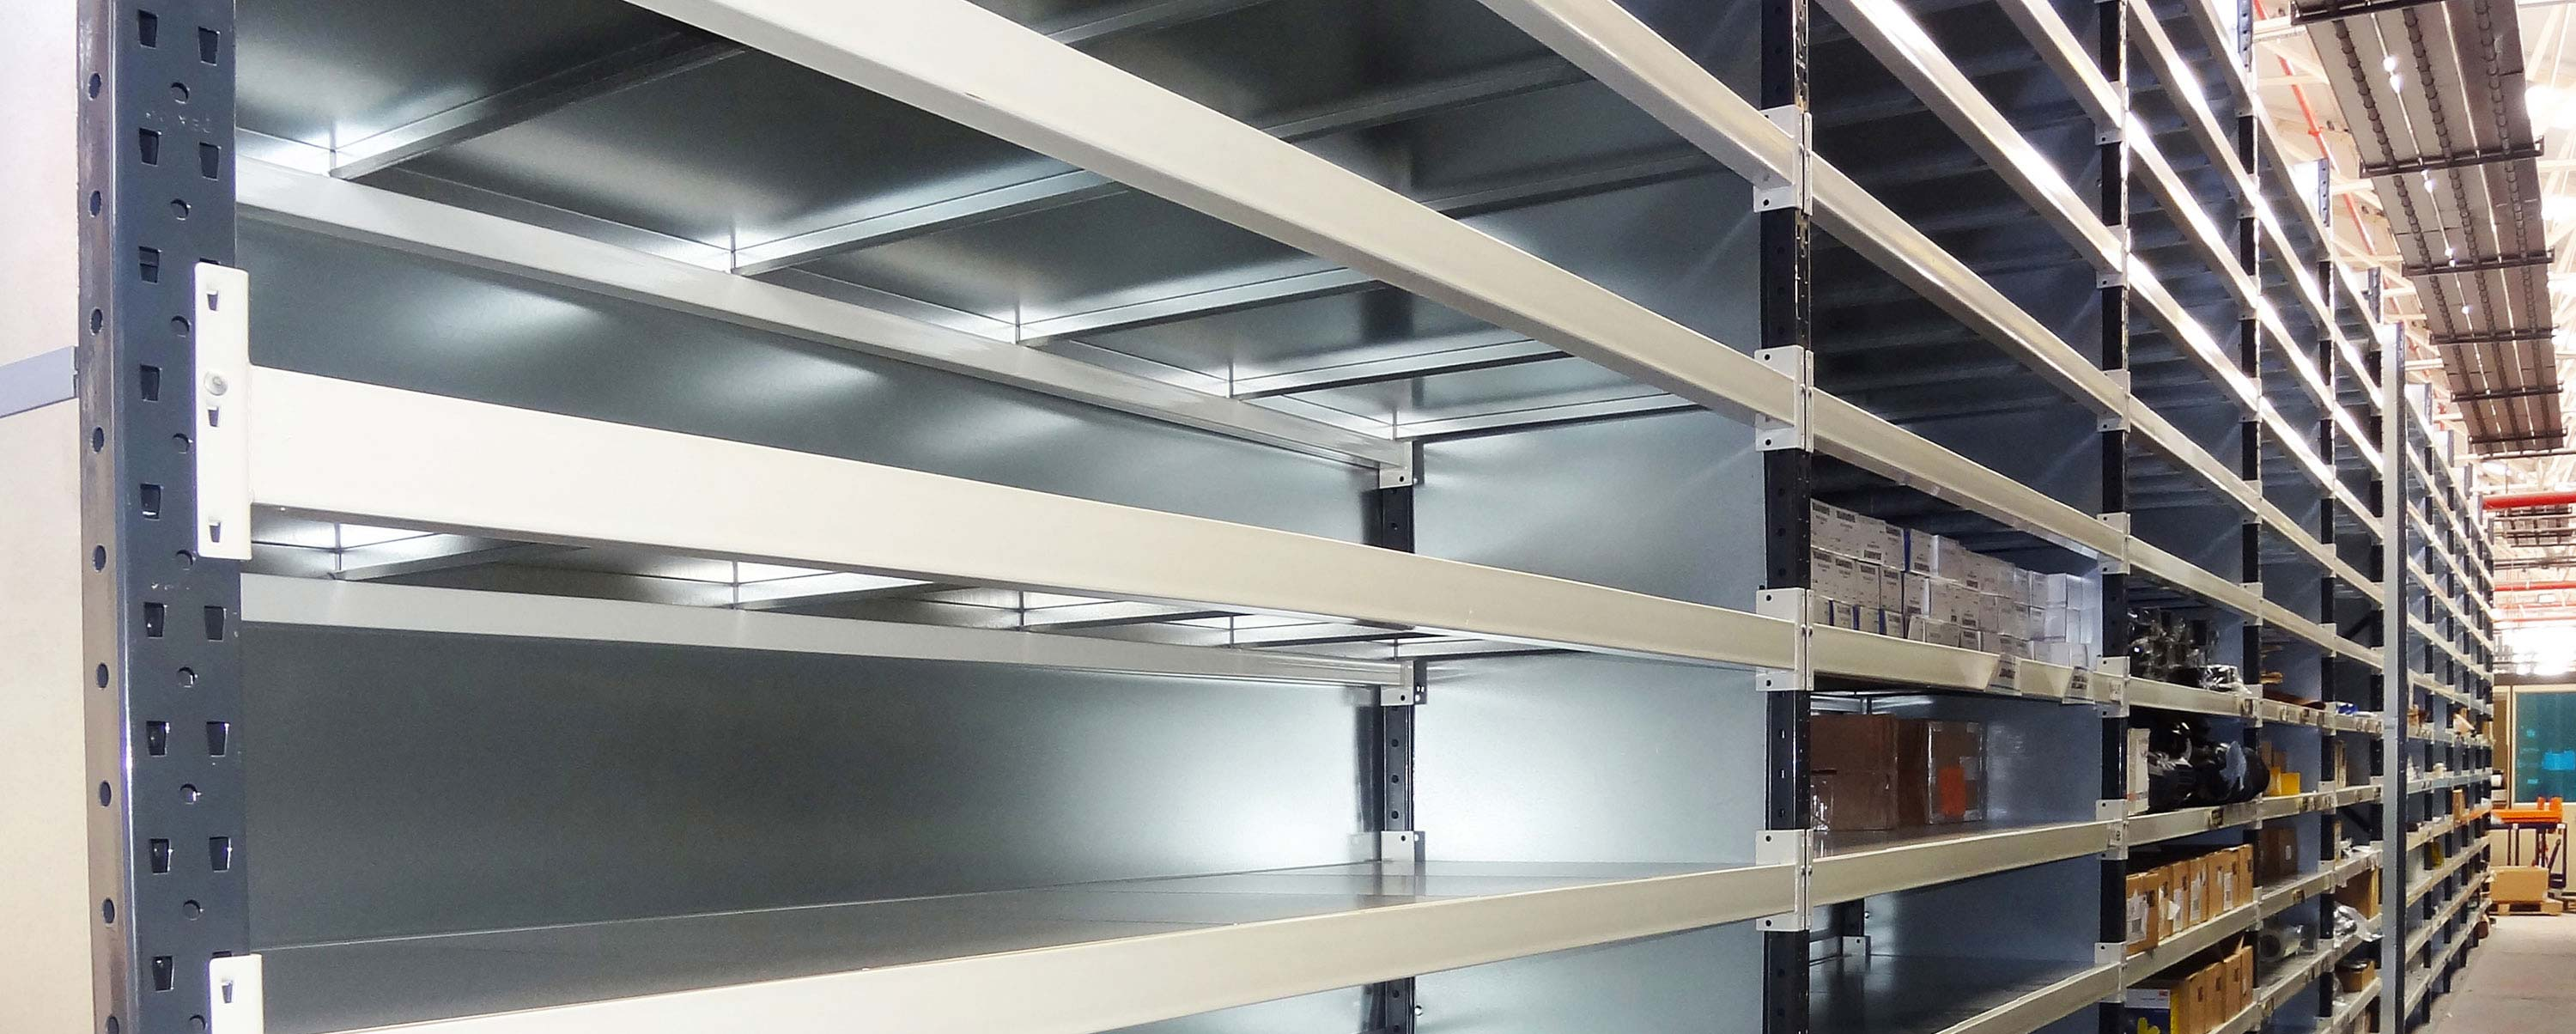 Commercial shelving and racking image